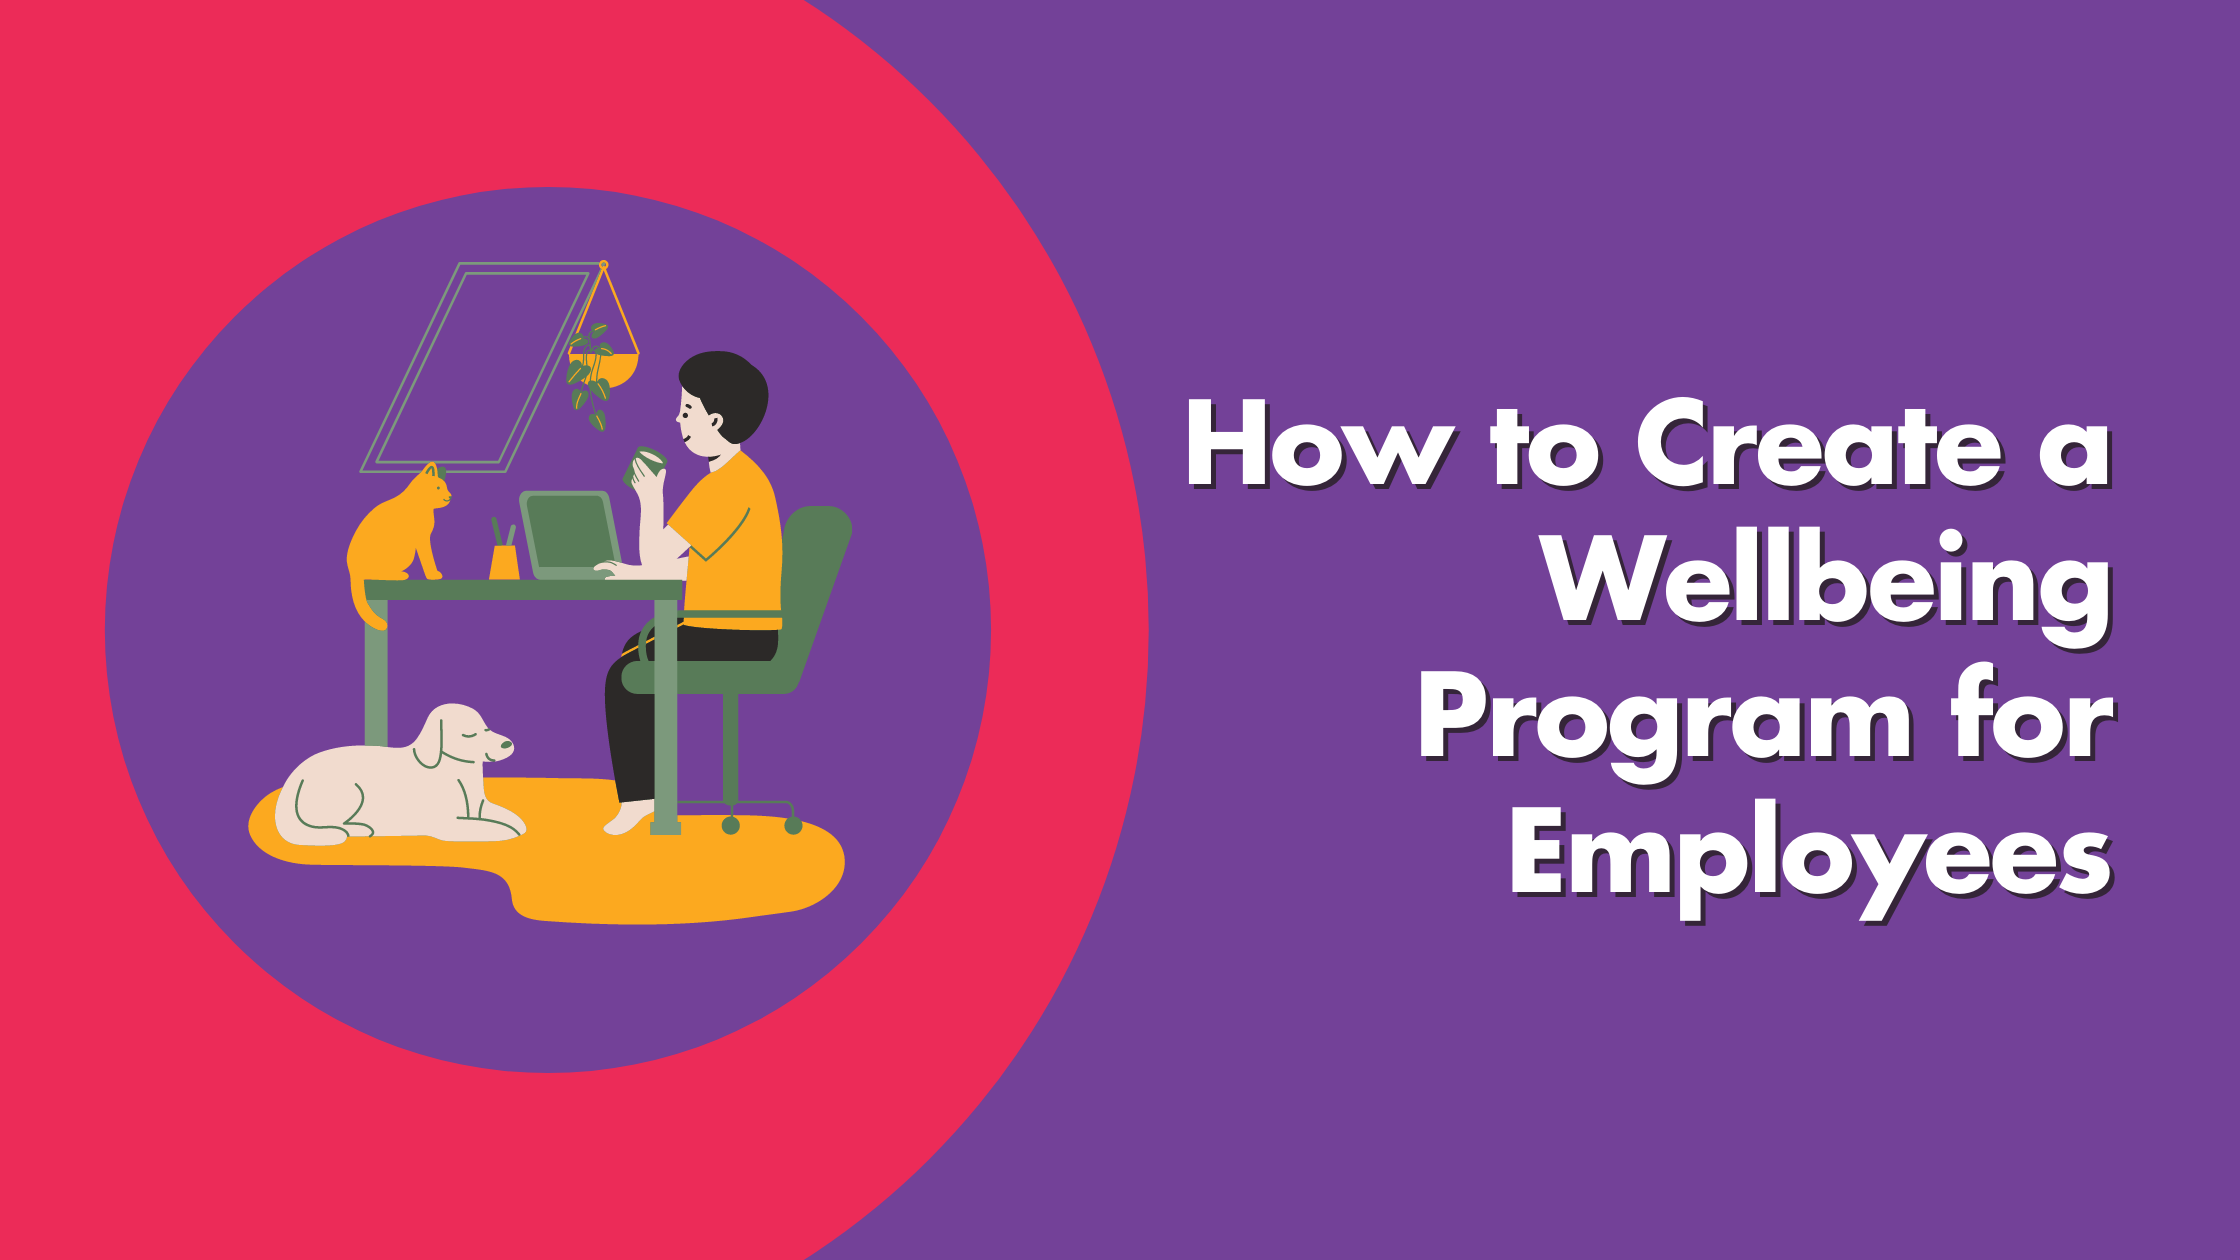 Wellbeing Program For Employees